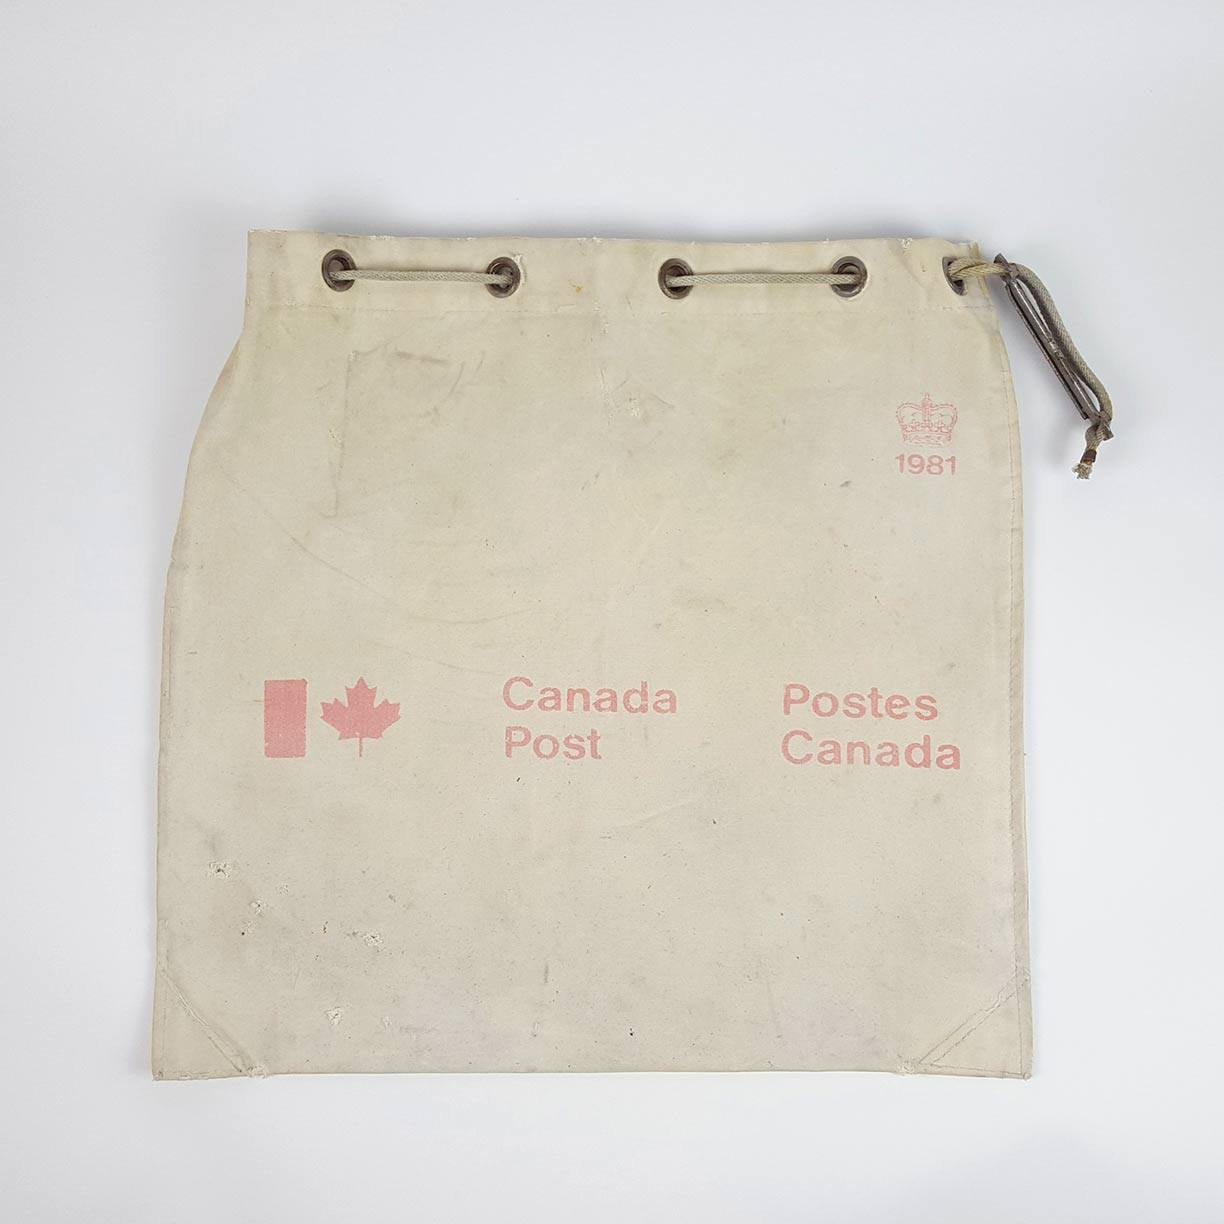 1981 Canada Post Mail Bag - www.kanahta.com - 1